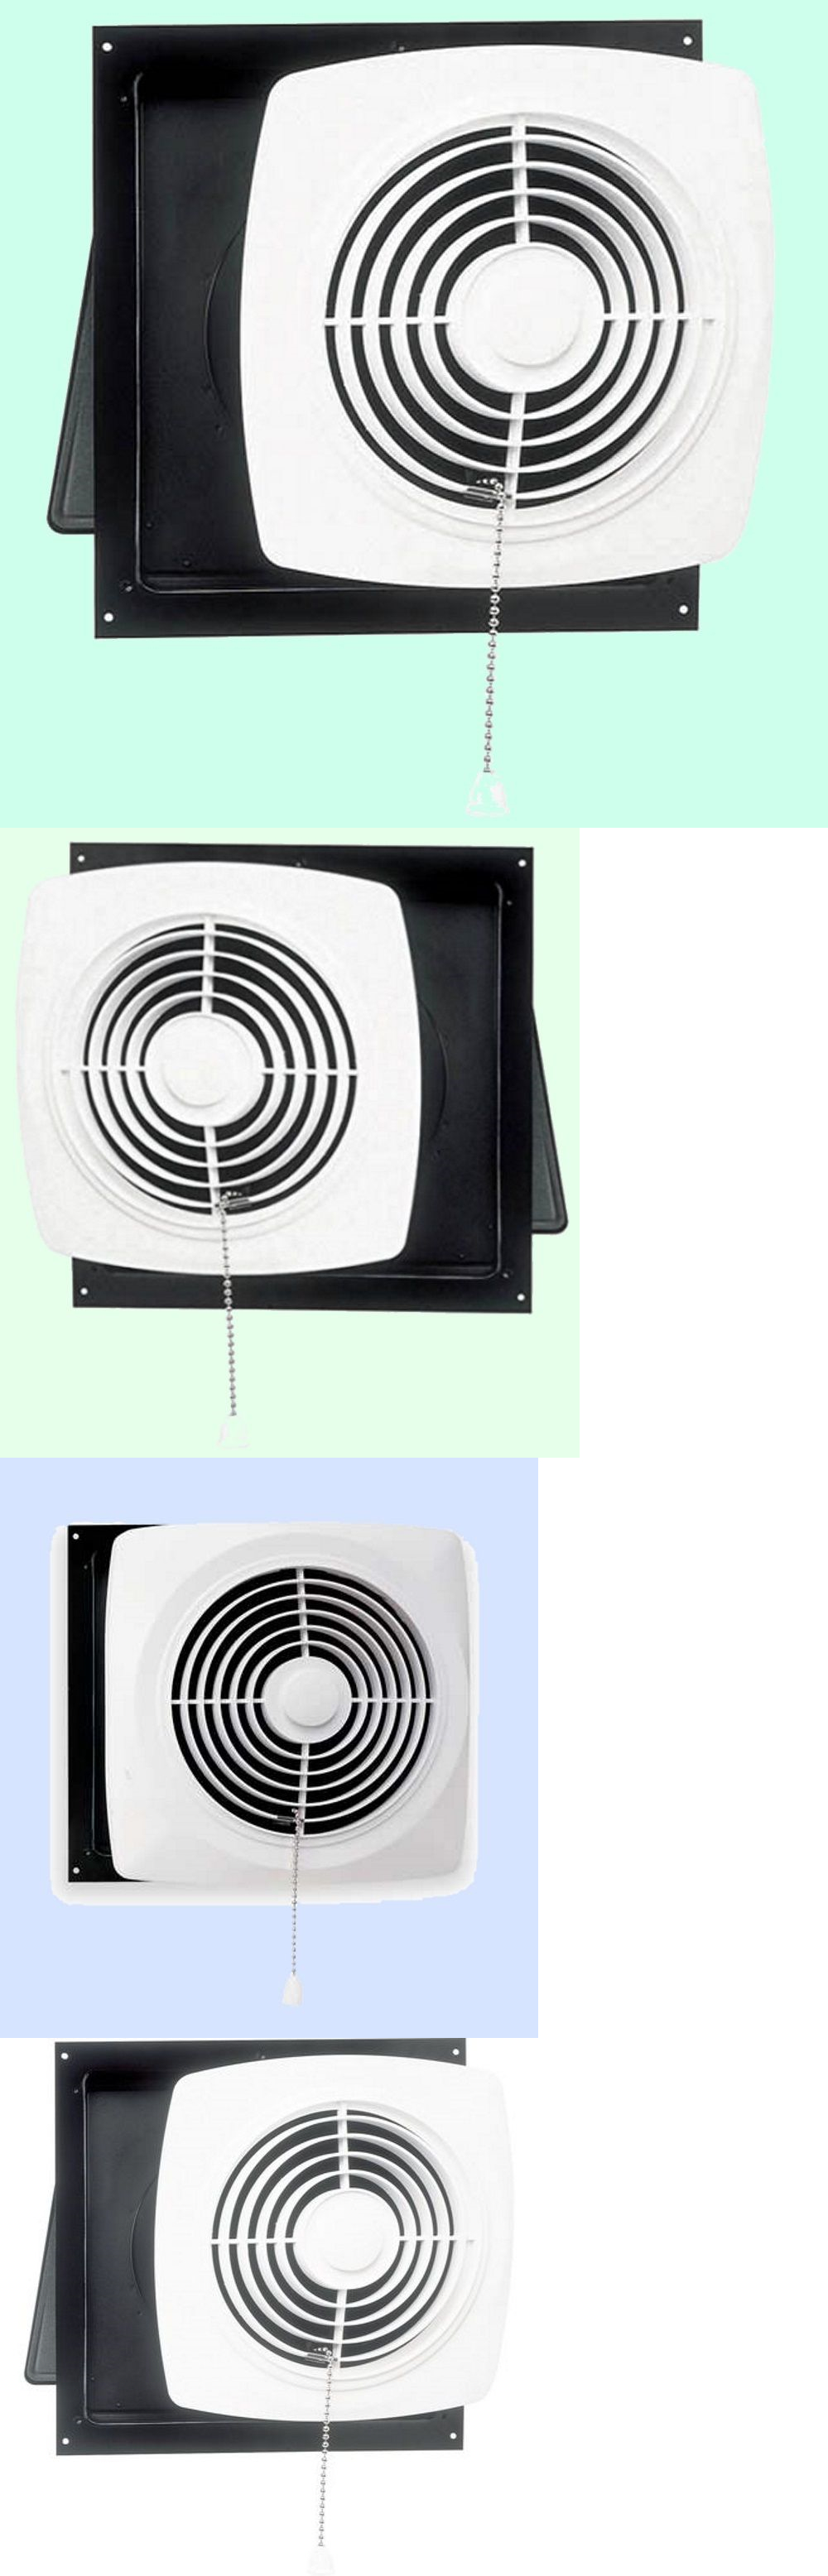 laundry room exhaust fan toilet other home heating and cooling 20598 kitchen exhaust fan 10 pull chain white wall ventilation